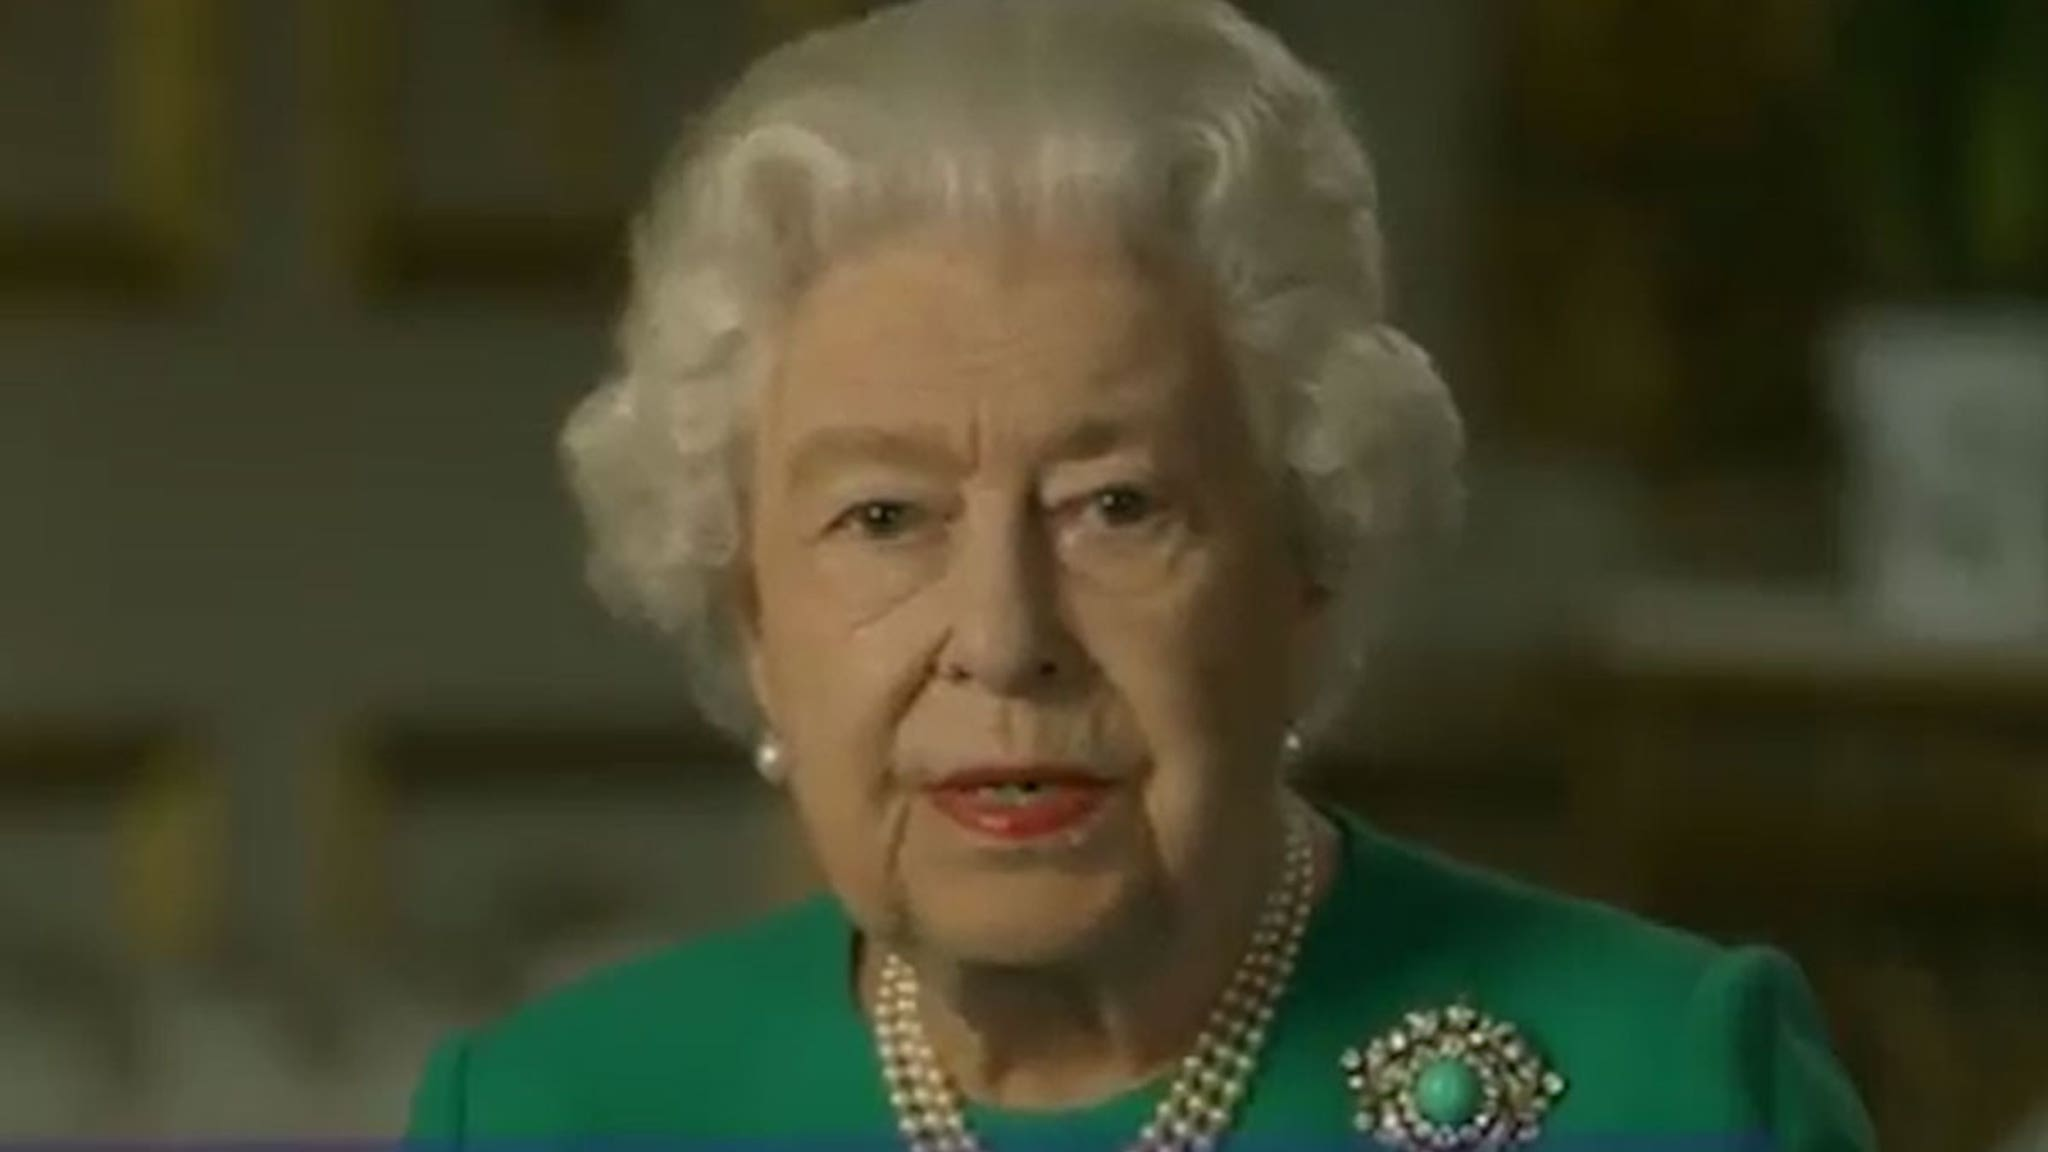 Queen Elizabeth Tells Brits to Hang Tough in Coronavirus Address